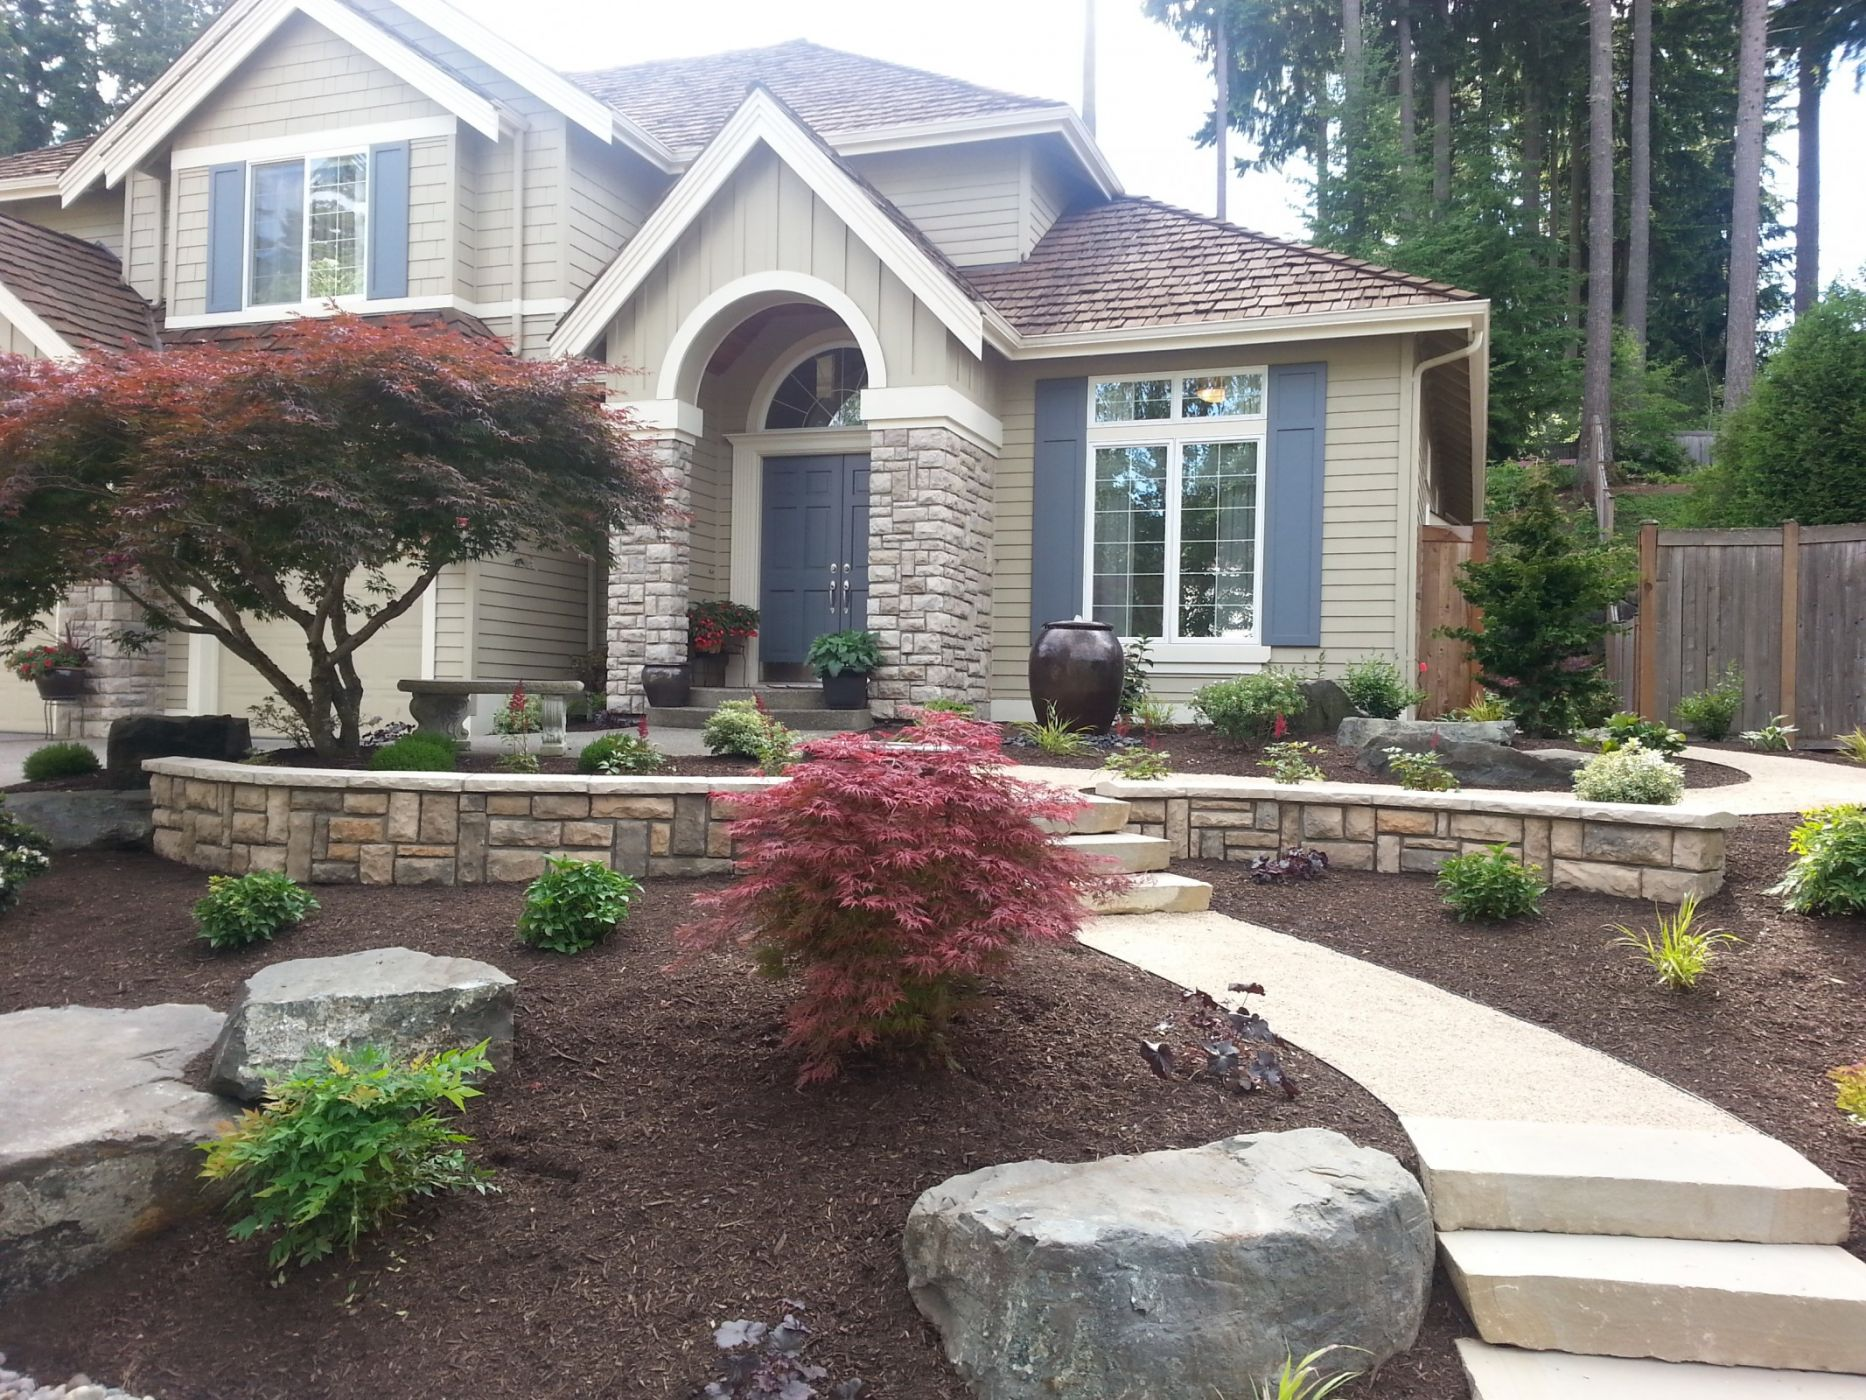 Janika landscaping ideas front yard illinois here for House front yard design